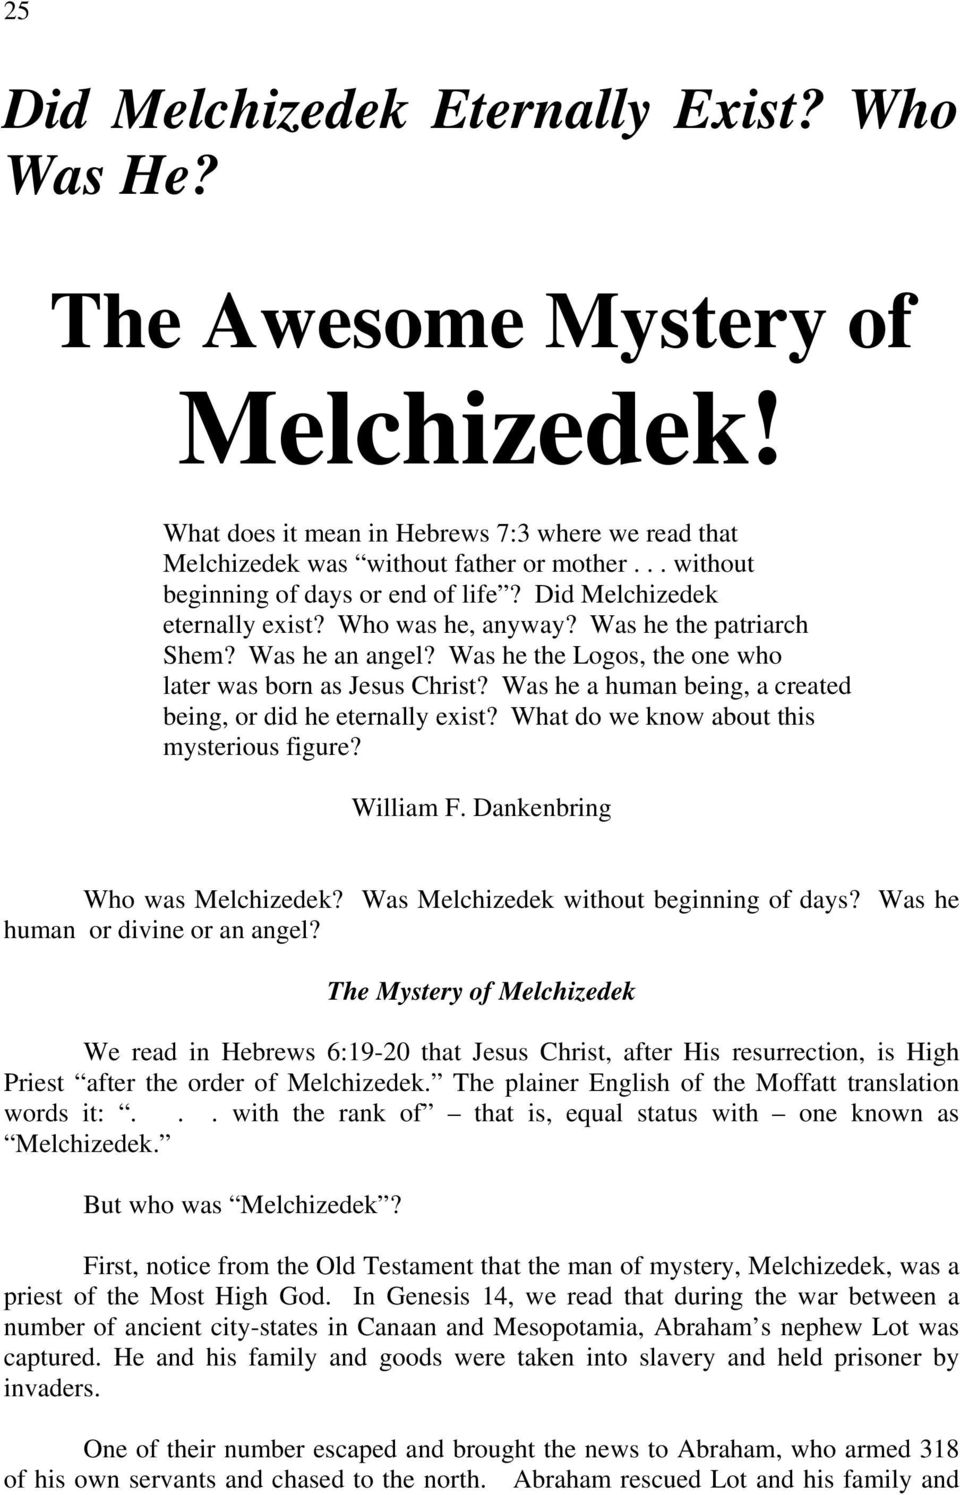 The Awesome Mystery of Melchizedek! - PDF